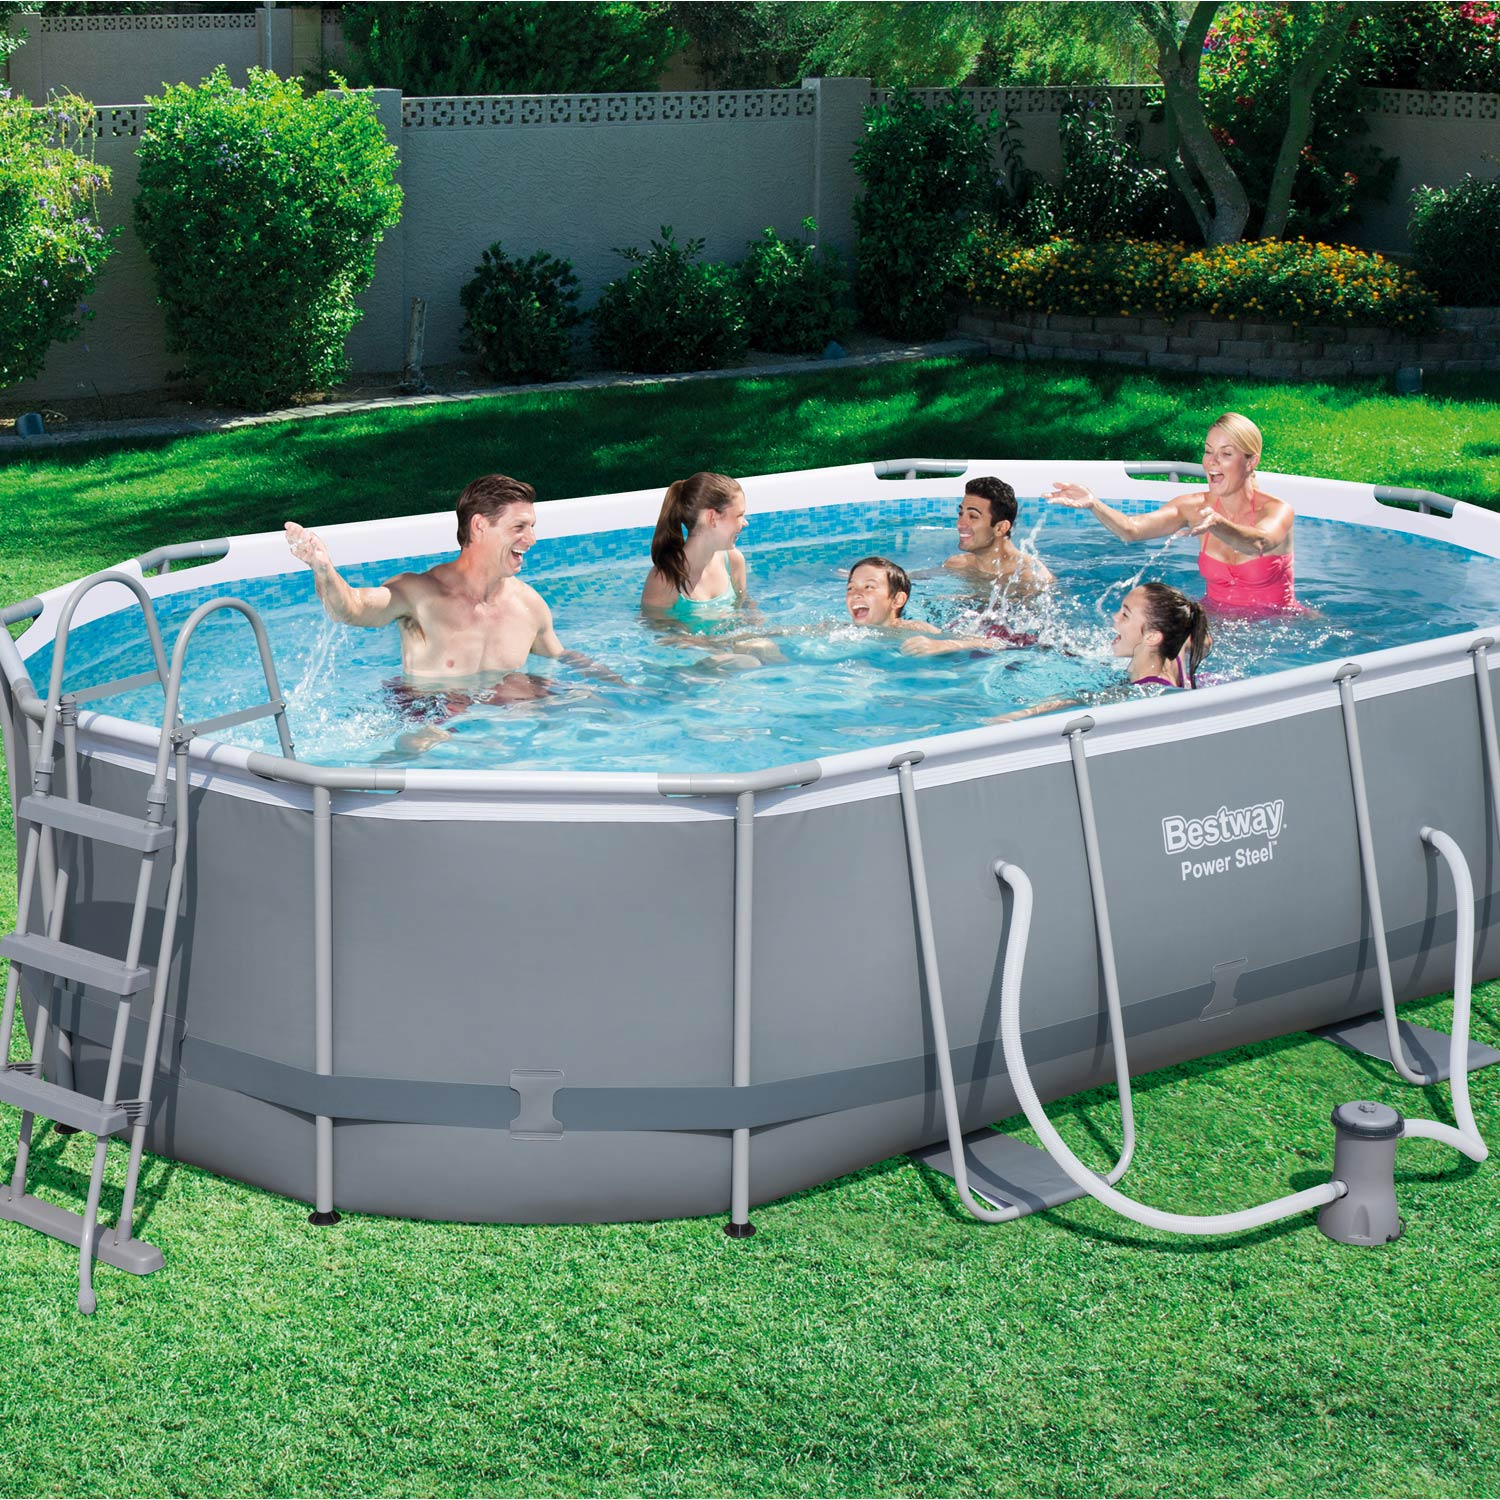 Piscine hors sol autoportante tubulaire bestway l x for Piscine en acier